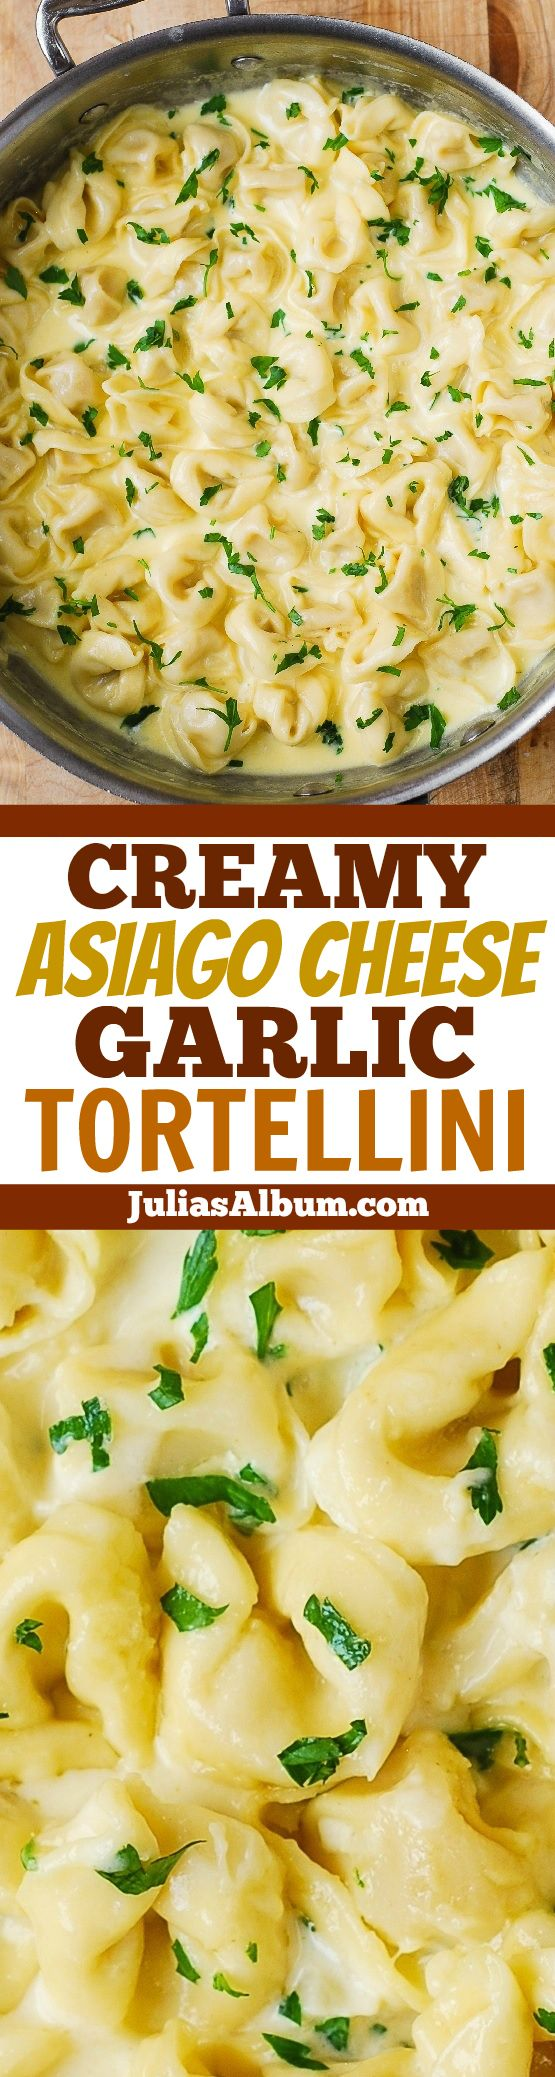 Delicious Tortellini smothered in a Creamy Asiago Cheese Garlic Sauce - easy, 30-minute pasta recipe!